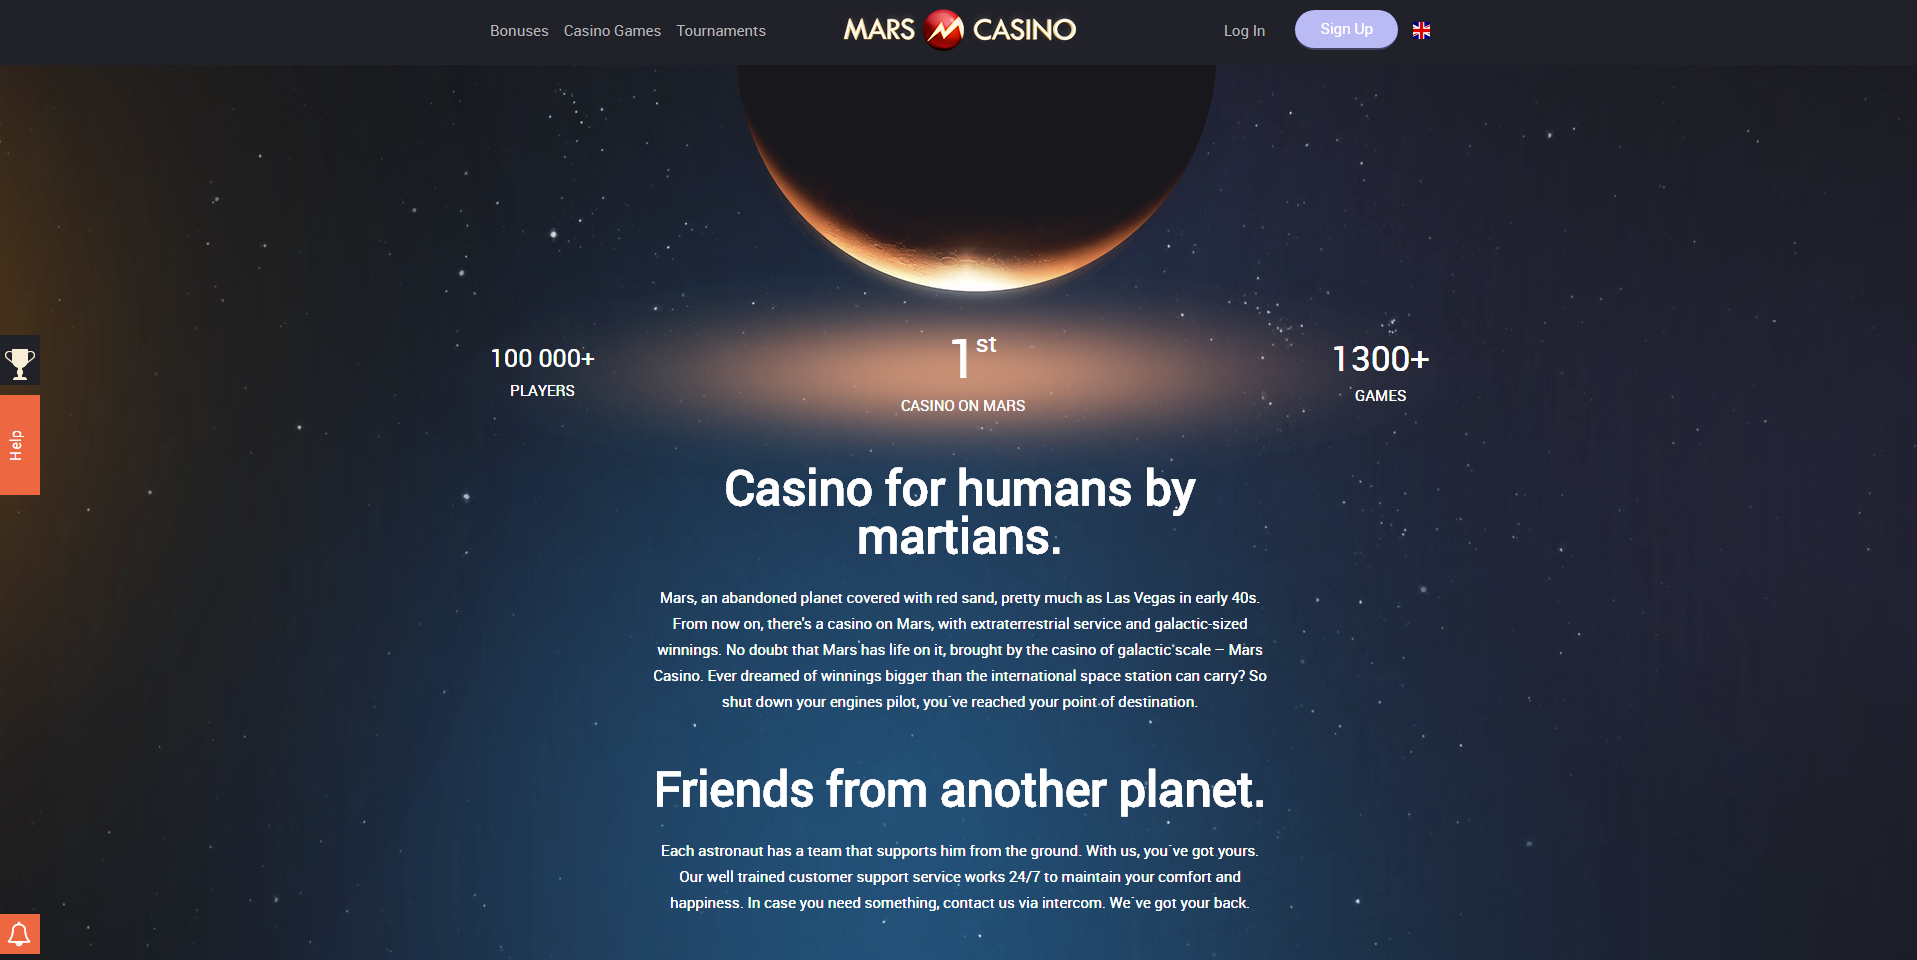 mars casino about page